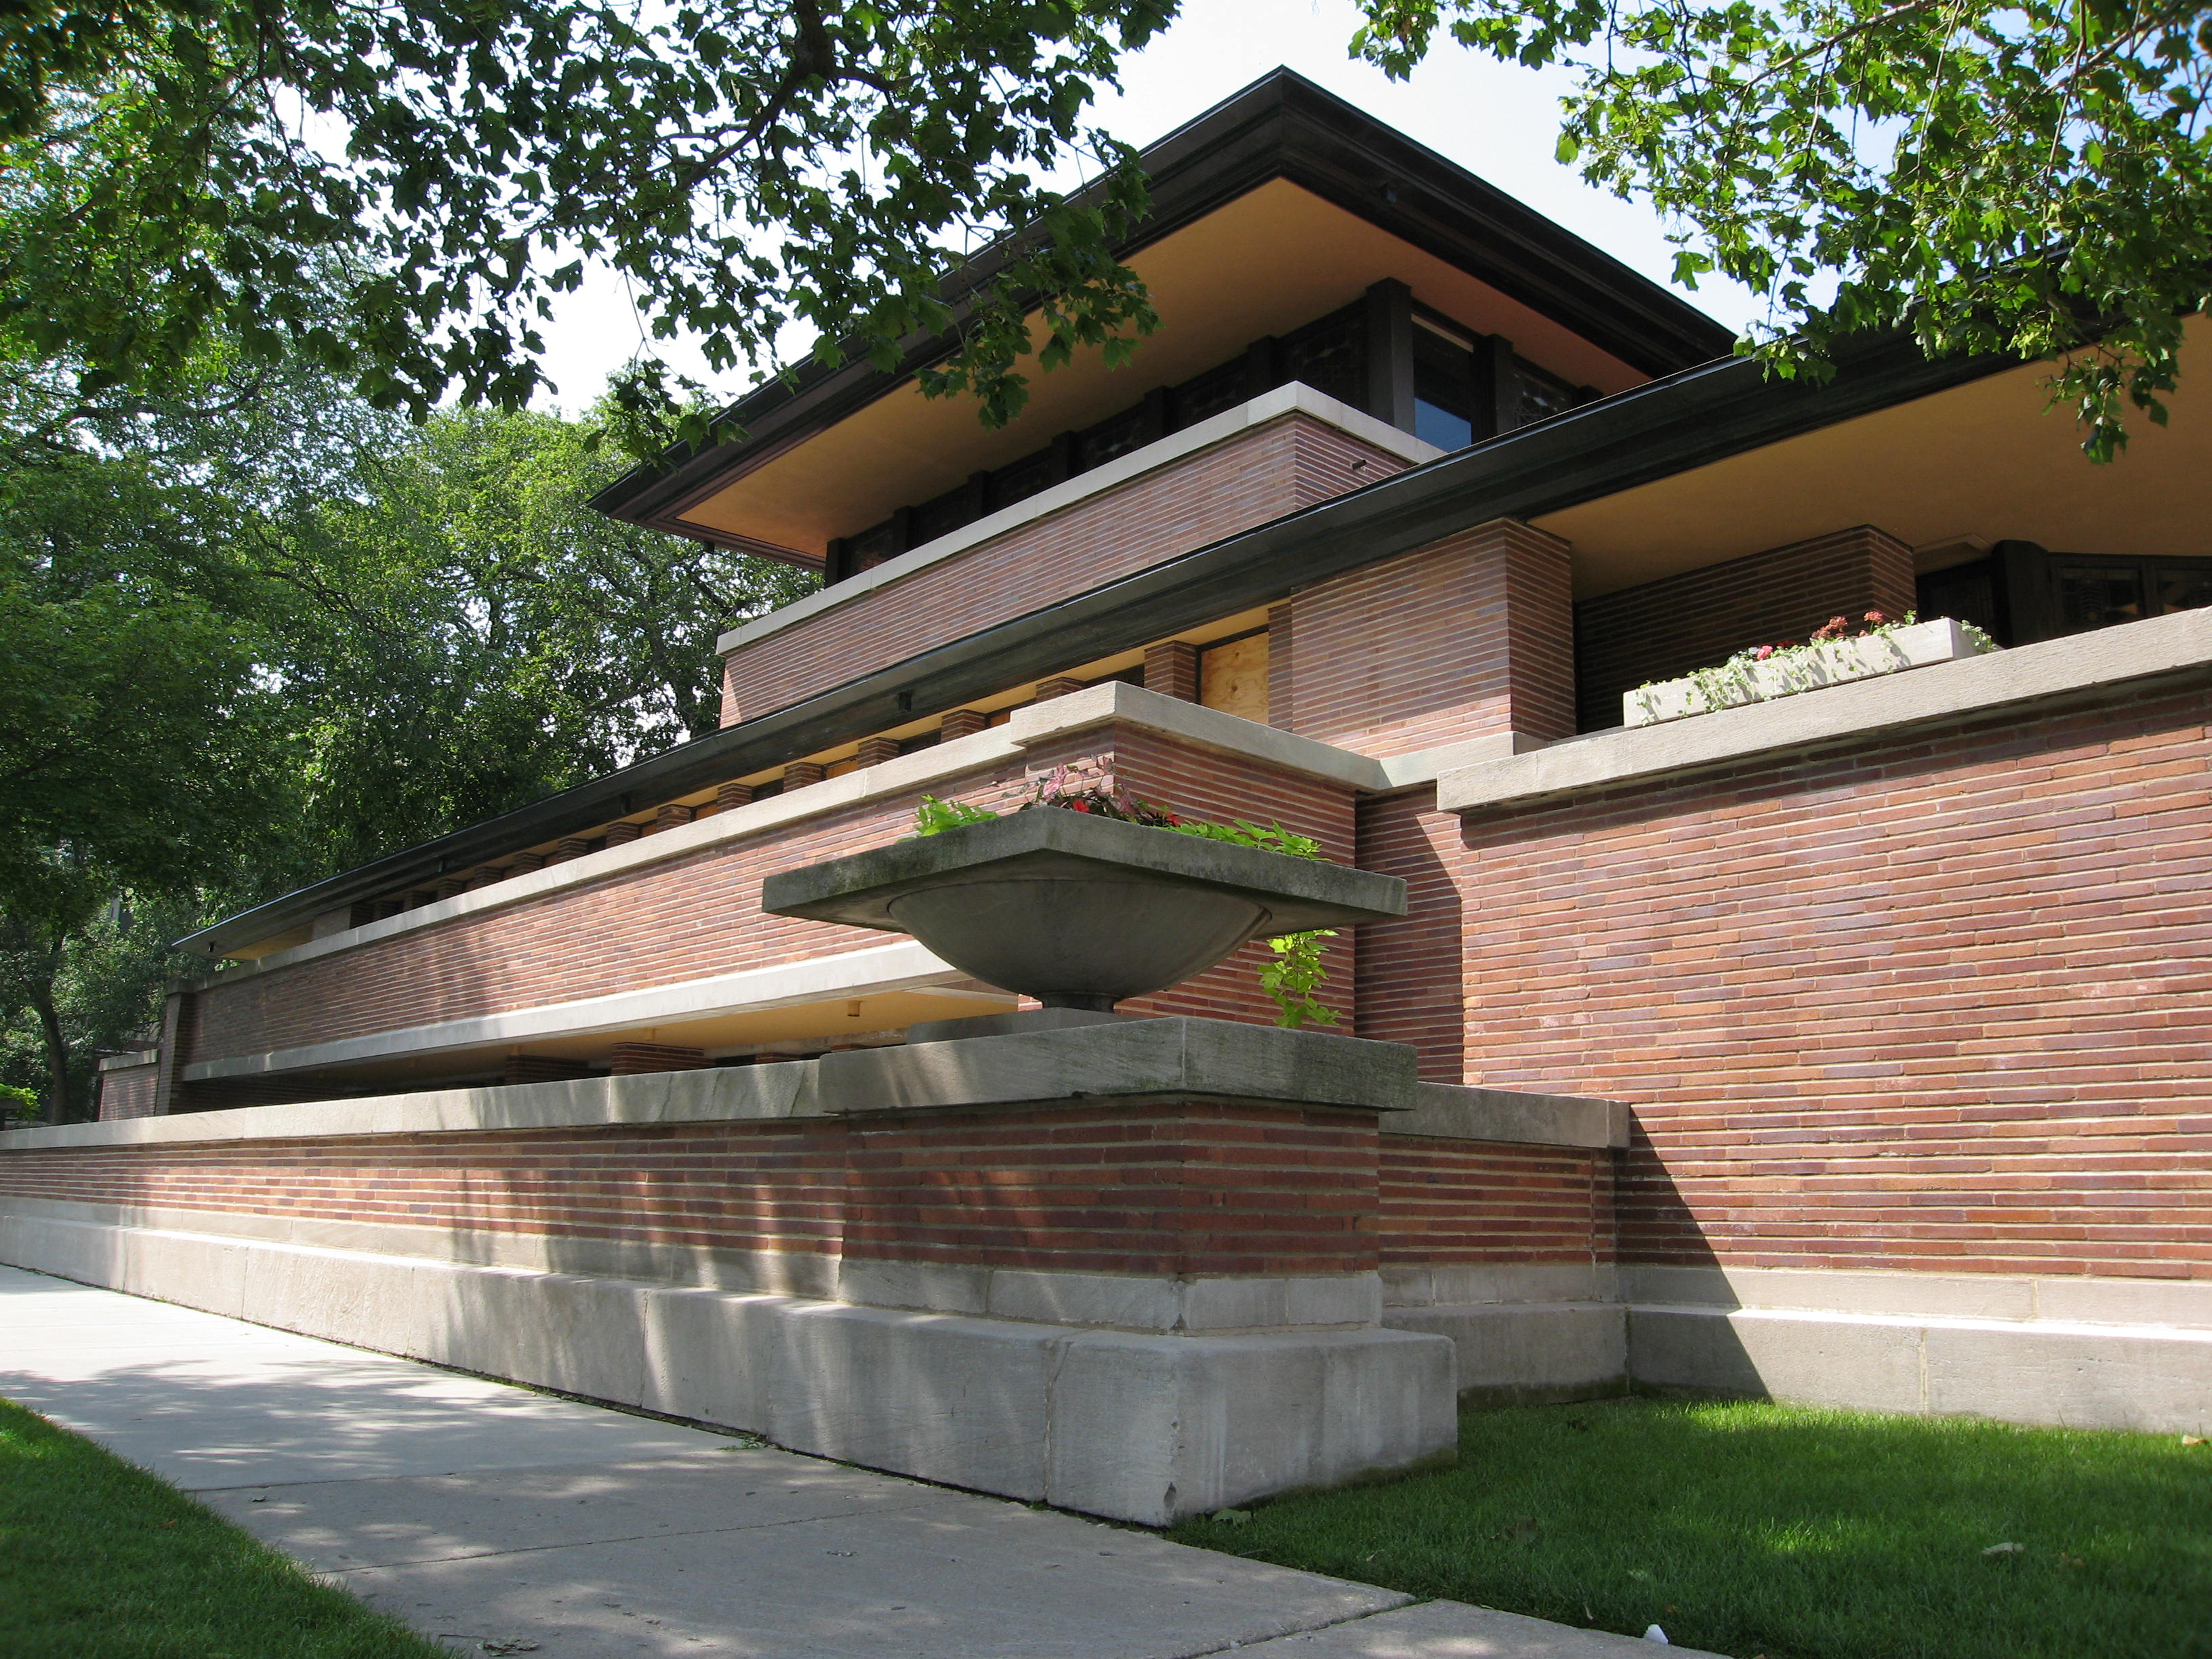 Robie House designed by Frank Lloyd Wright 1909 | Flickr ...